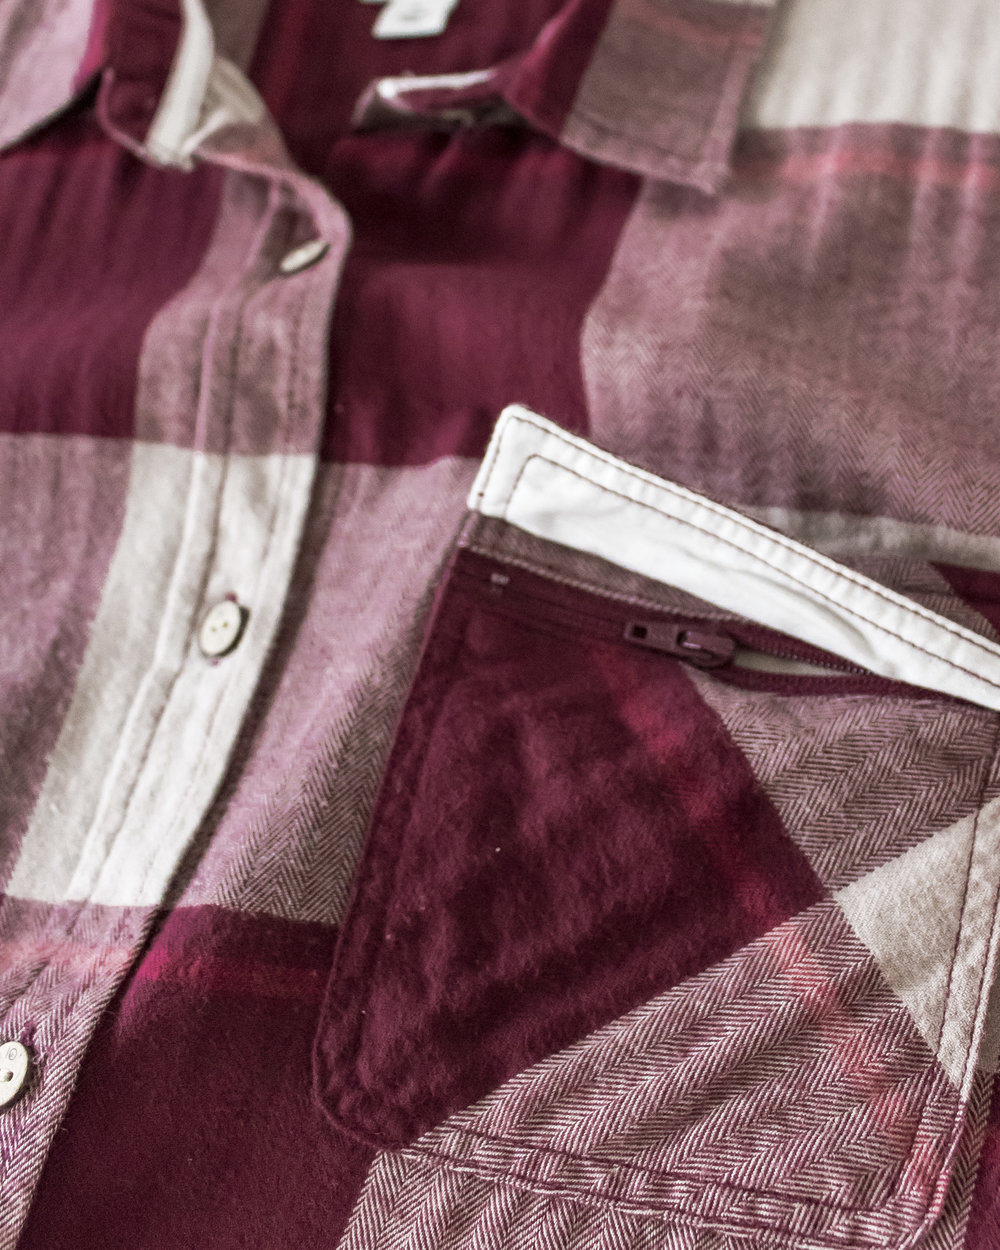 the chest pocket features a hidden zip closure beneath the flap.